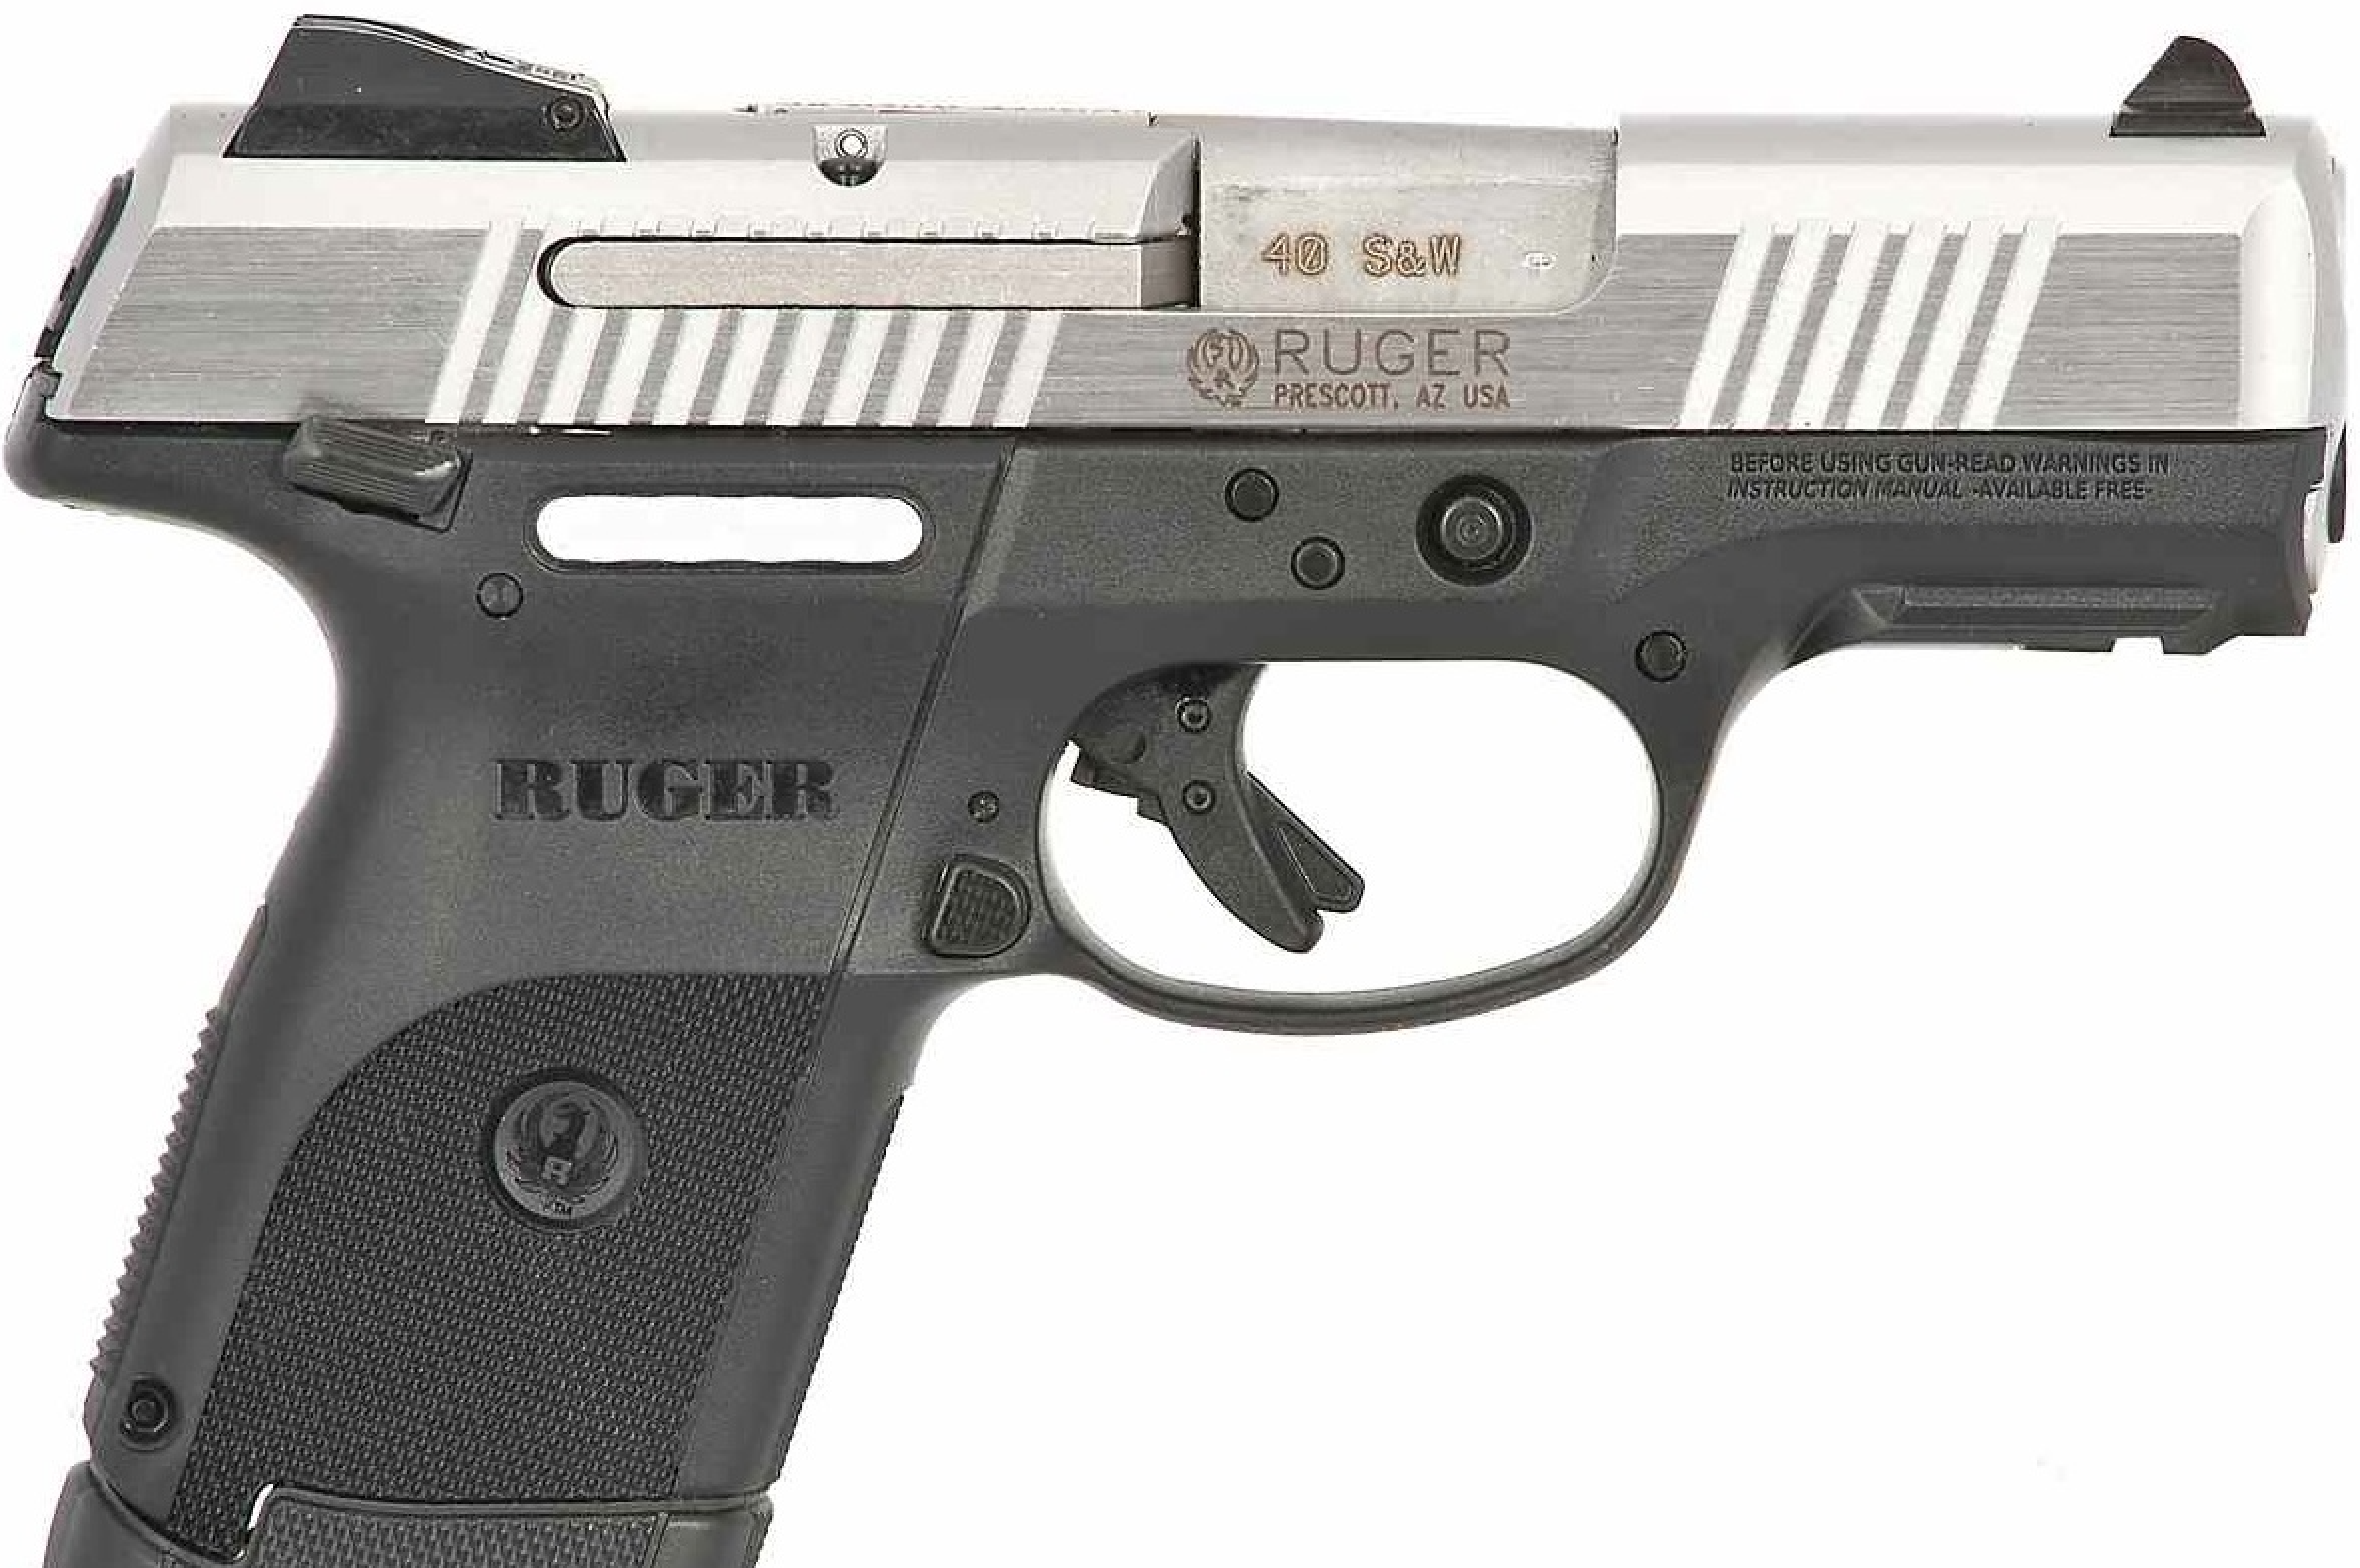 The Ruger SR40c: The Most Dangerous Handgun on the Planet?